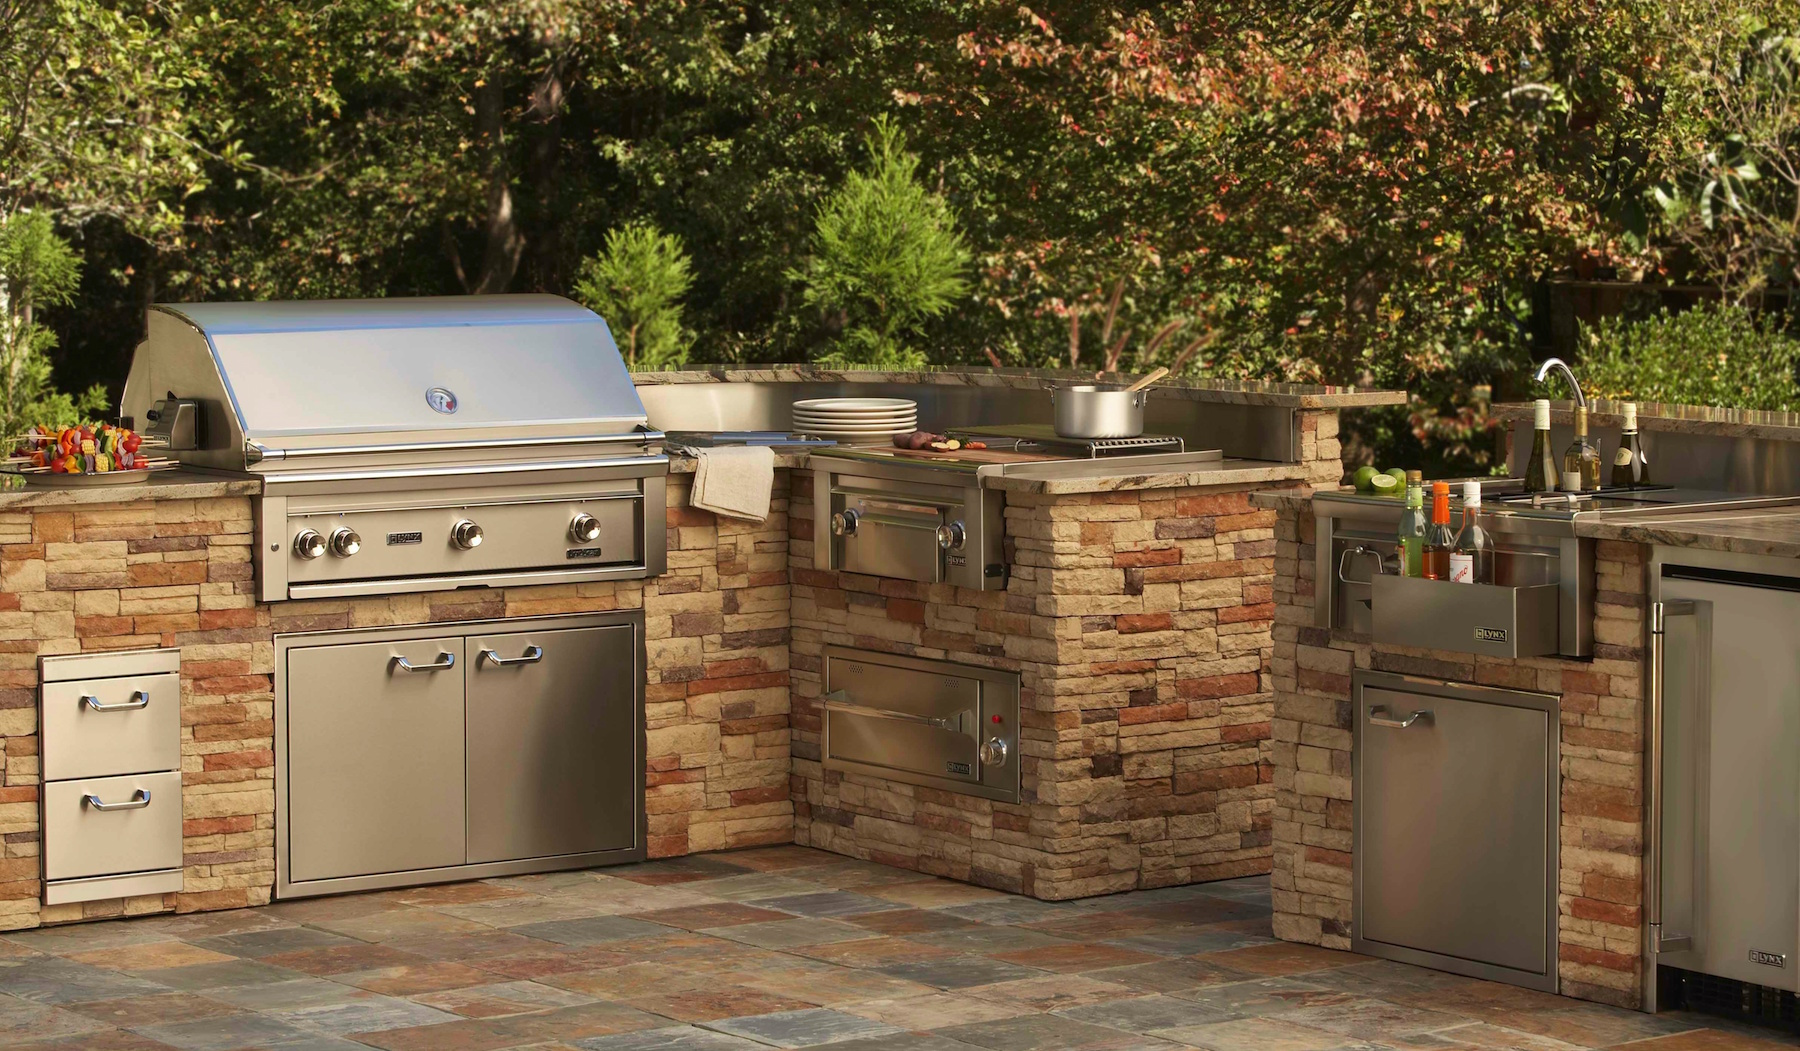 grills for outdoor kitchens kitchen faucets parts choosing a professional barbecue grill your